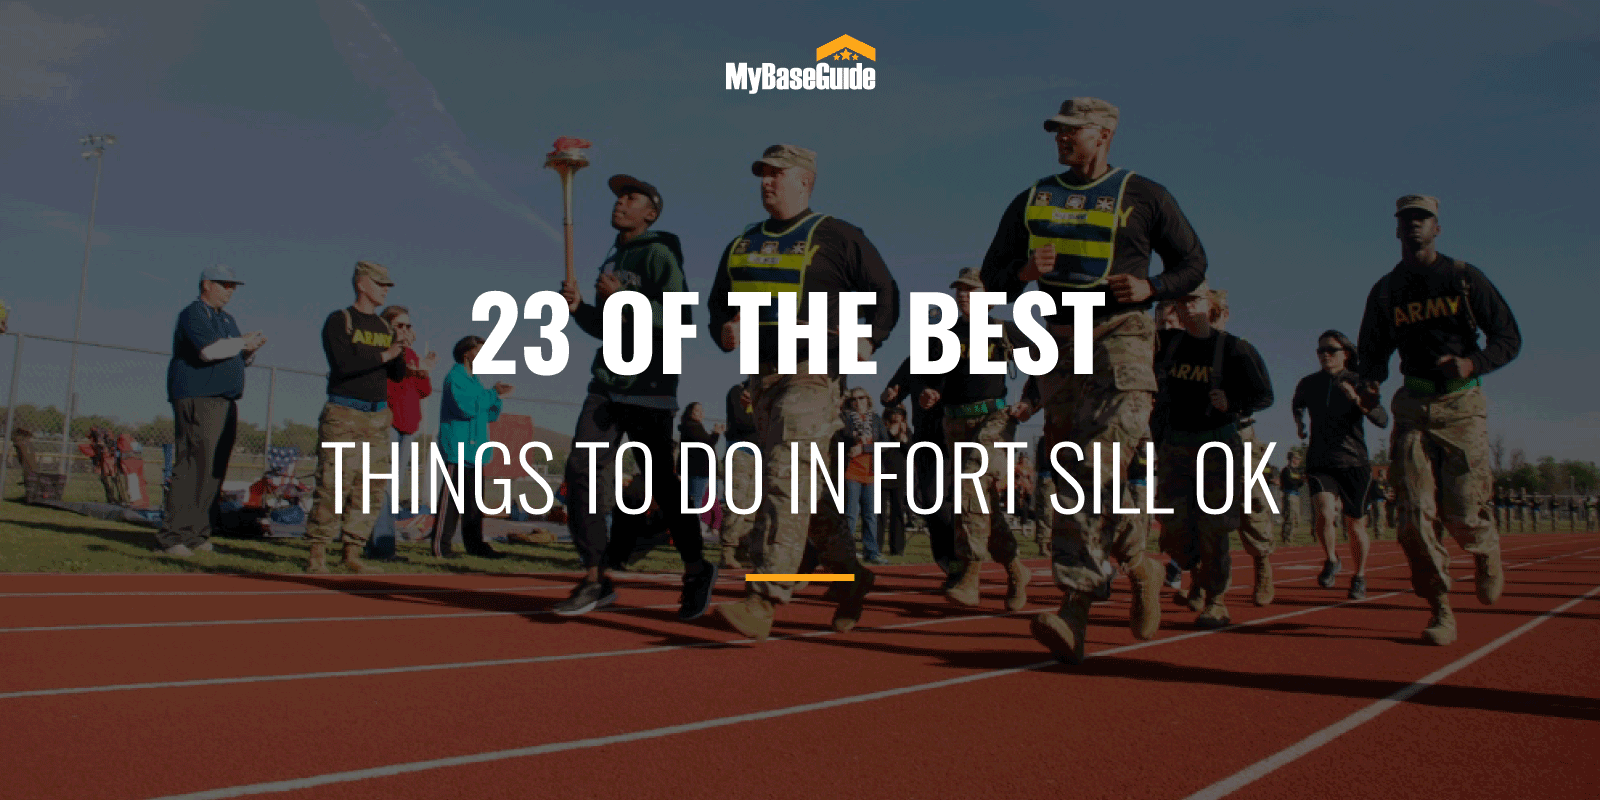 Best Things to Do Fort Sill